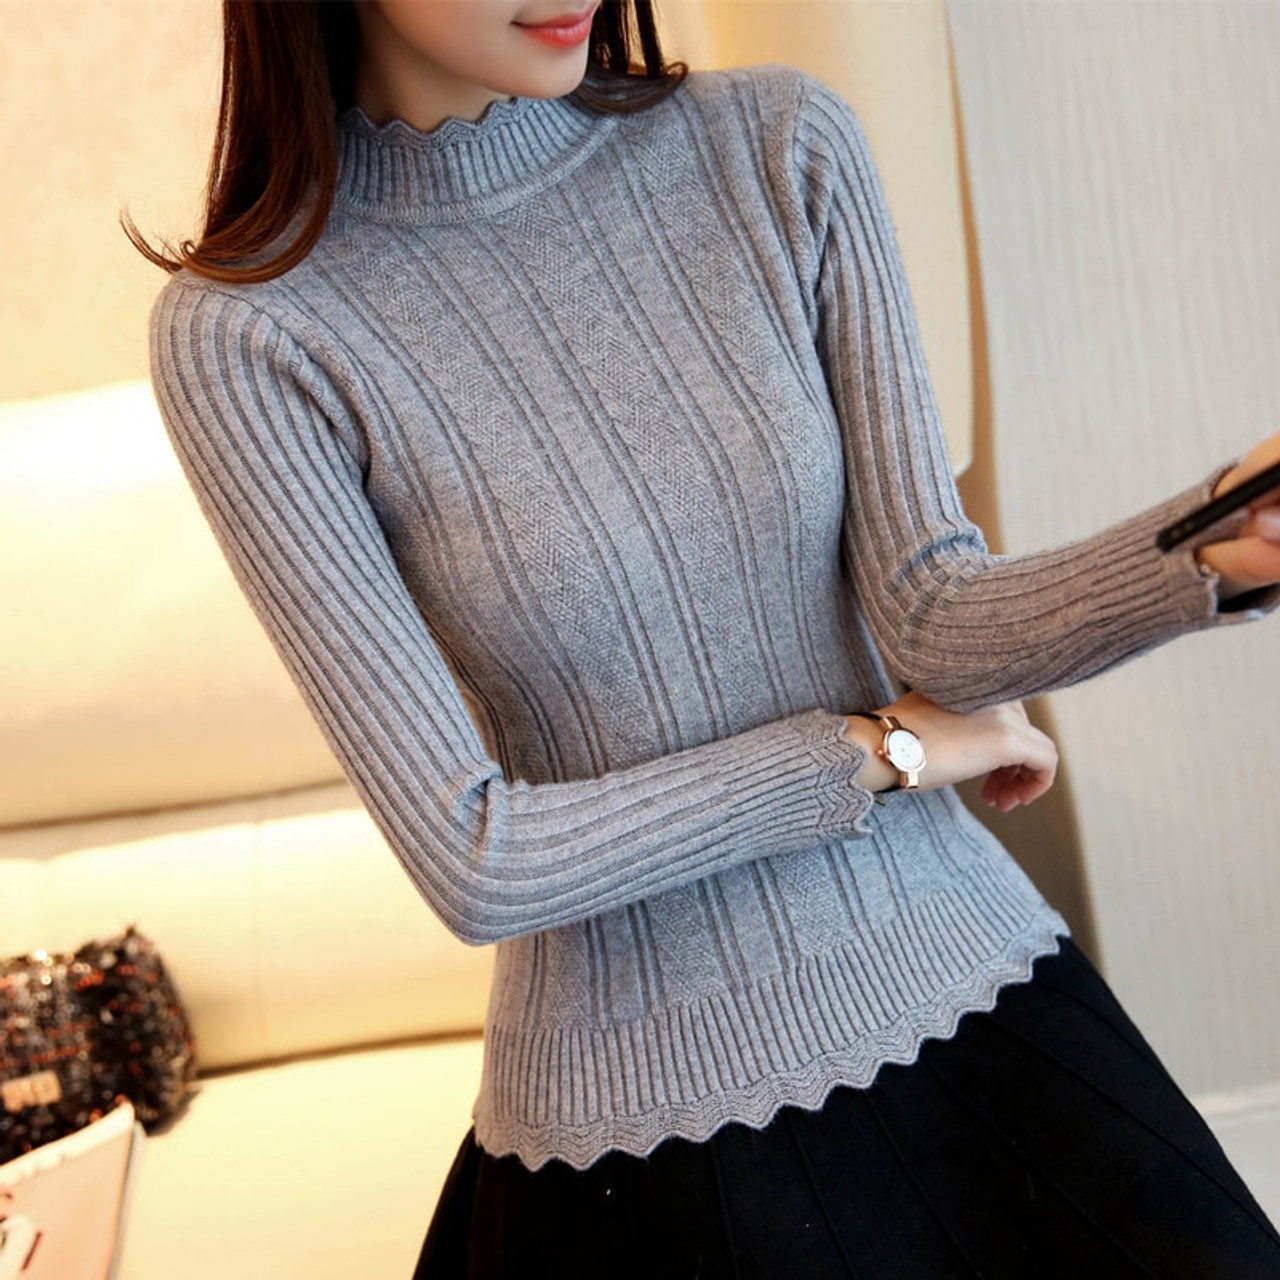 OHCLOTHIN 2018 new Fashion half Korean women knitted sweater slim petal collar  shirt Elastic Bottoming Turtleneck Twist Pullover - OnshopDeals.Com 84dd4ceed